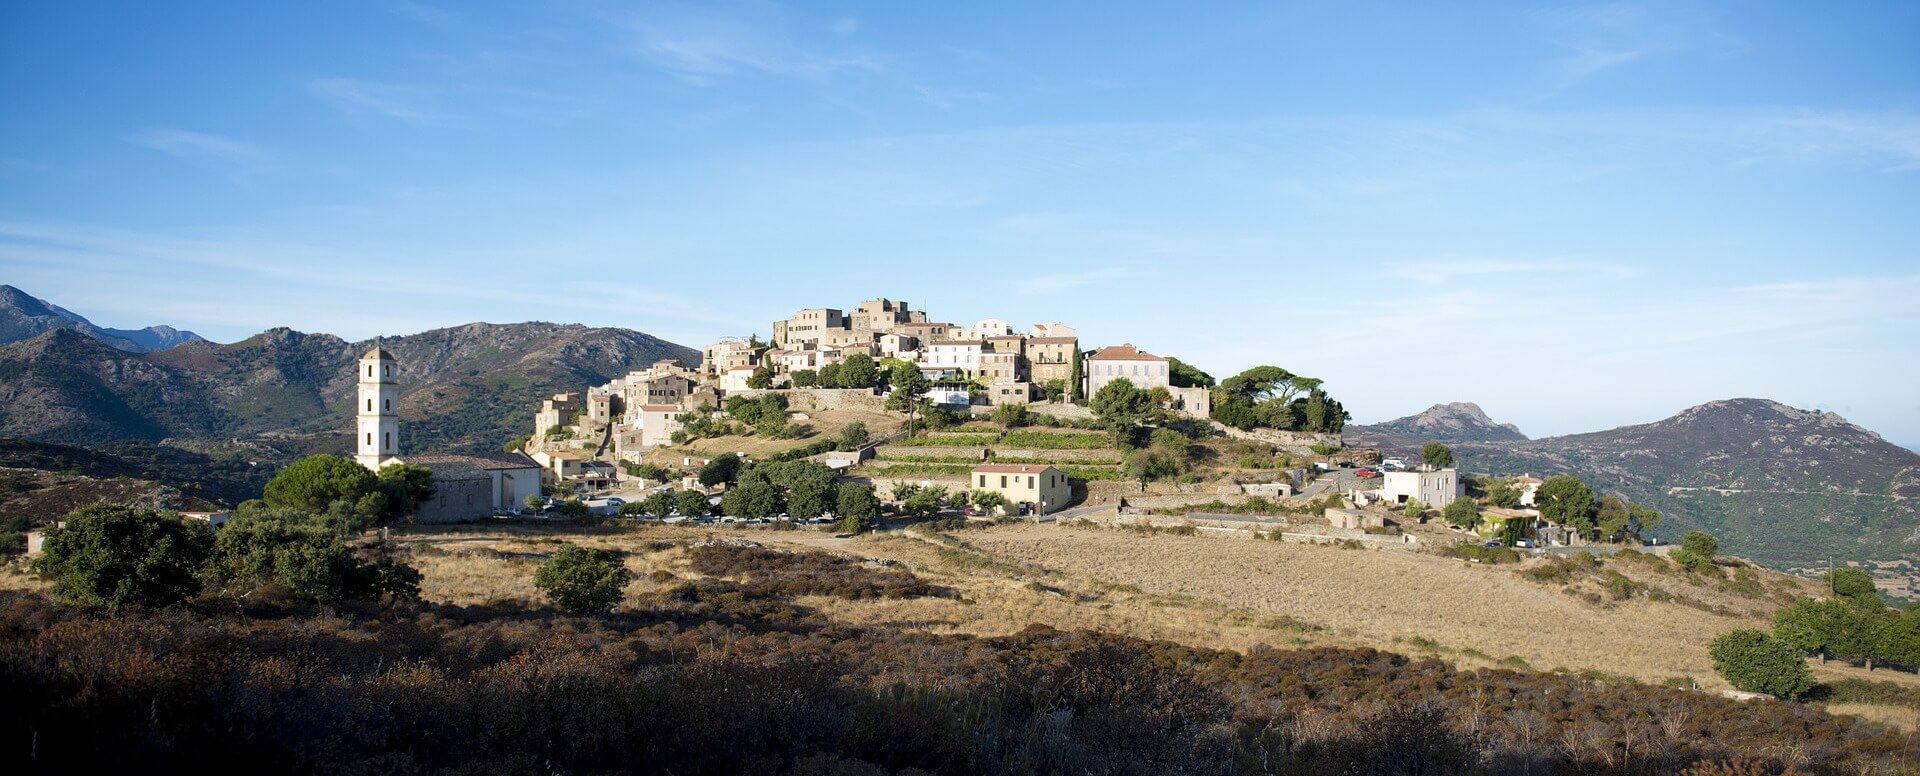 Not to be missed in Corsica - Corsica